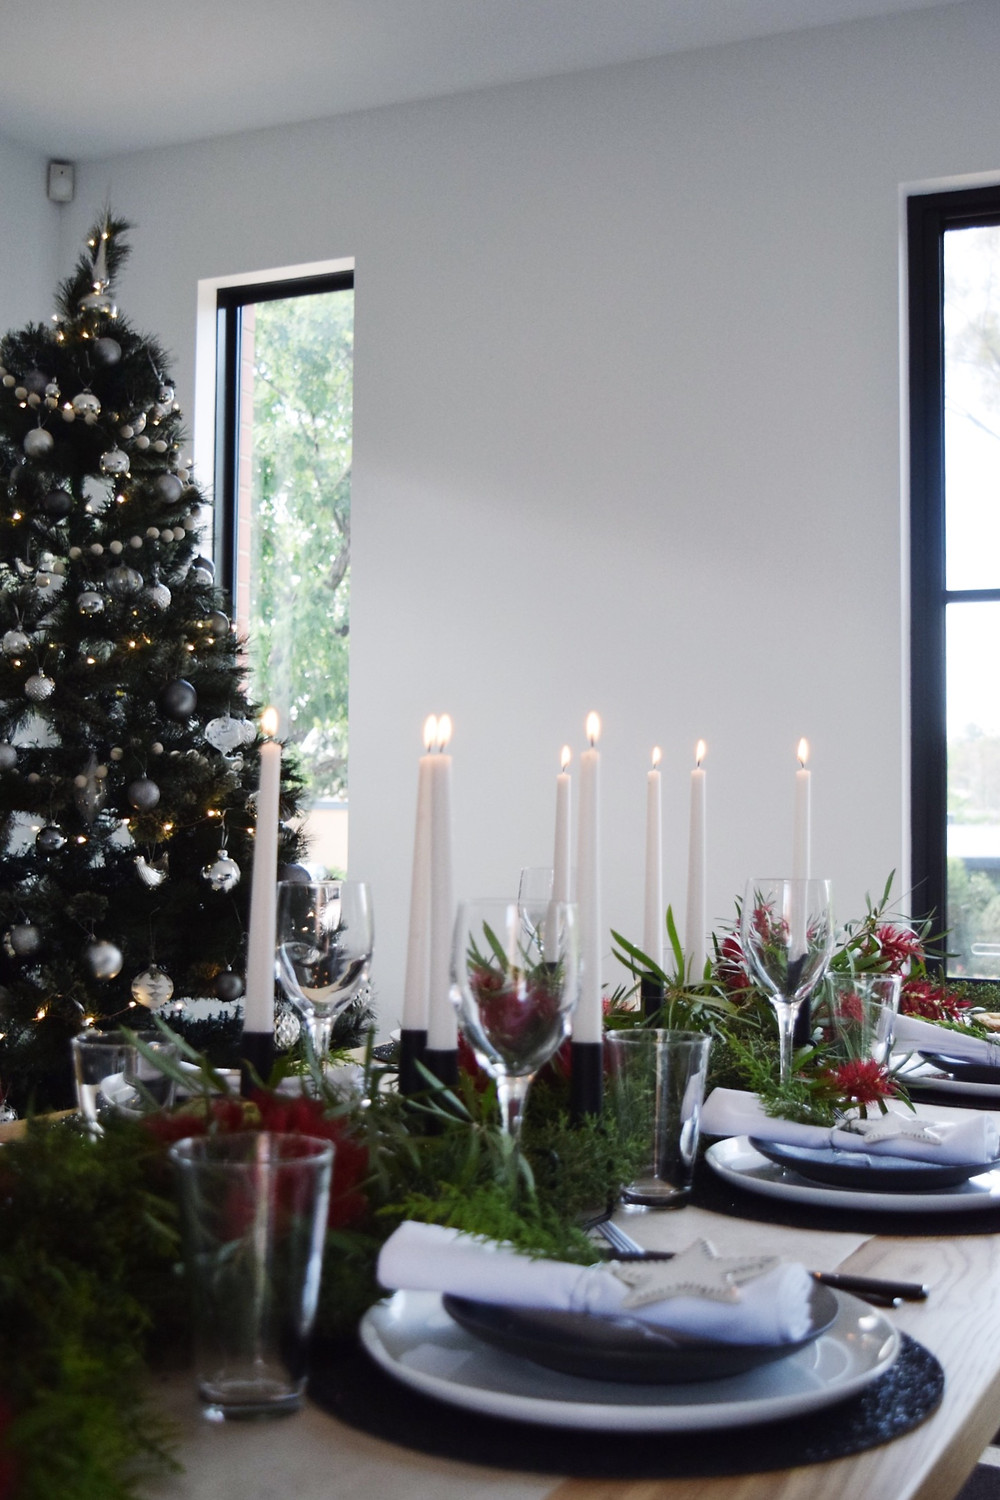 Black and white contrasting Christmas table settings with native fauna table pieces